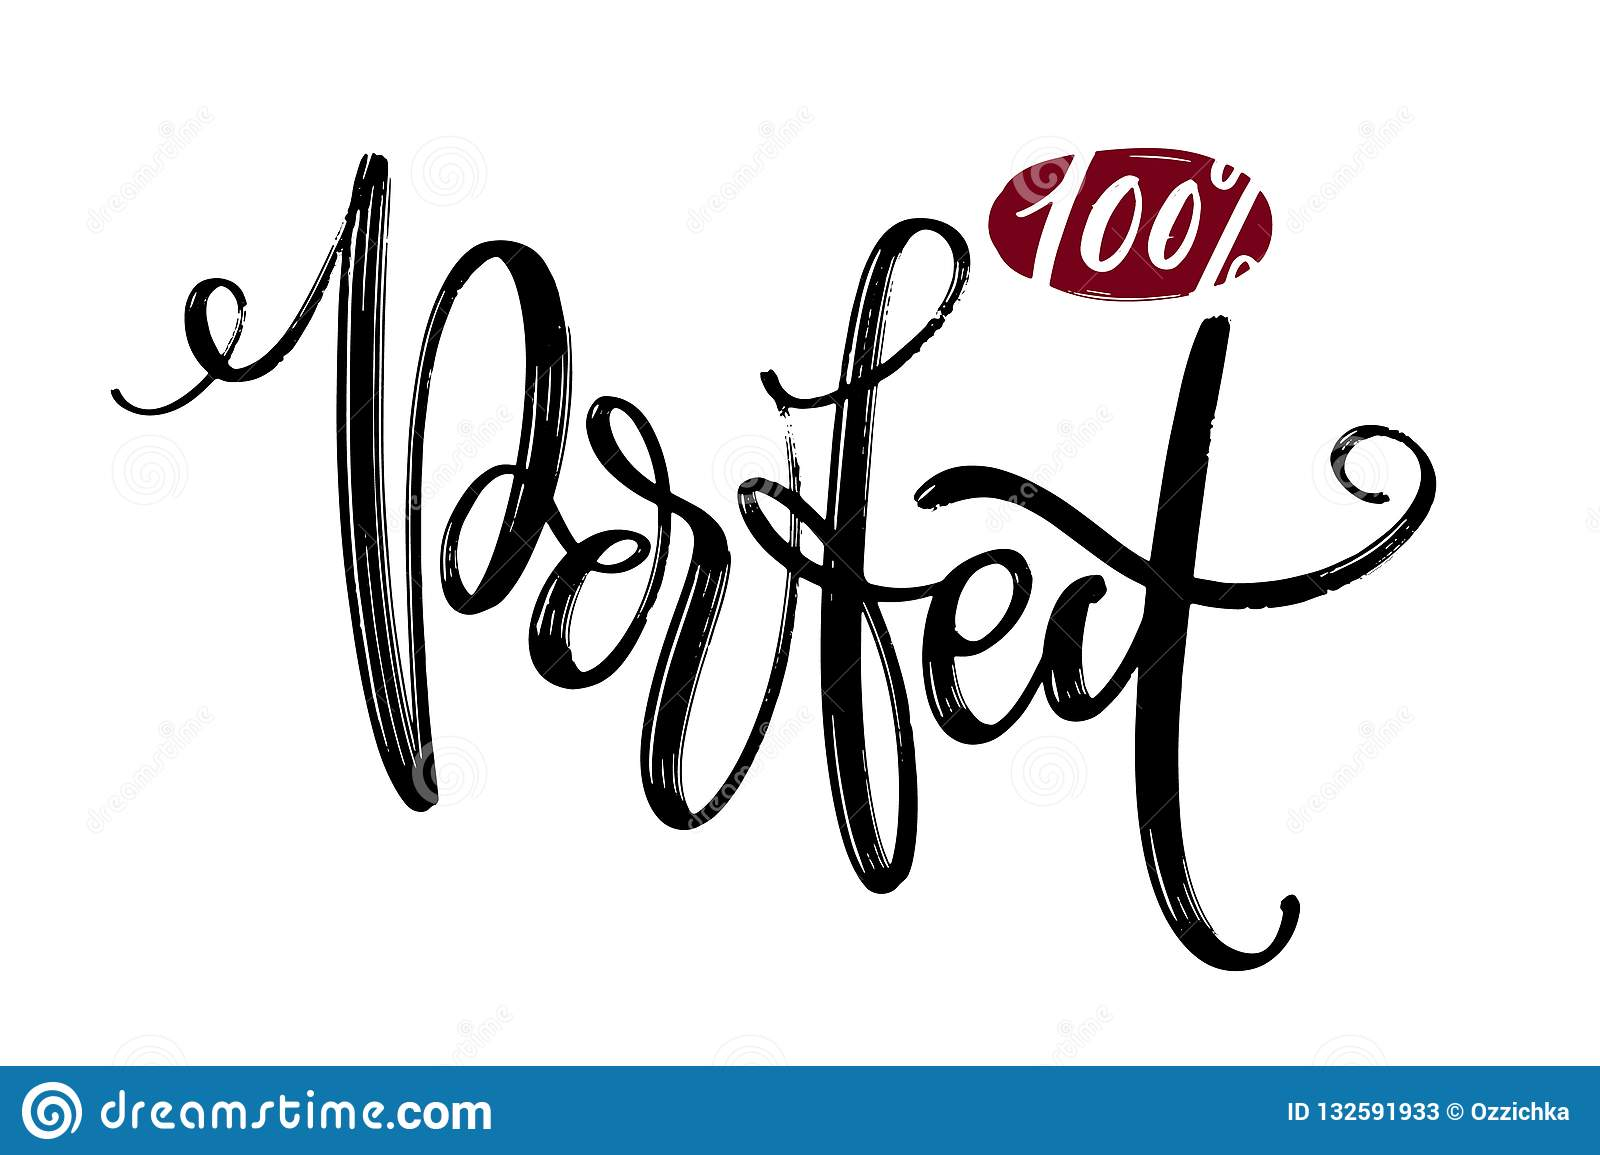 Hand drawn vector lettering. 100 percent perfect phrase by hand. Isolated vector illustration. Handwritten modern